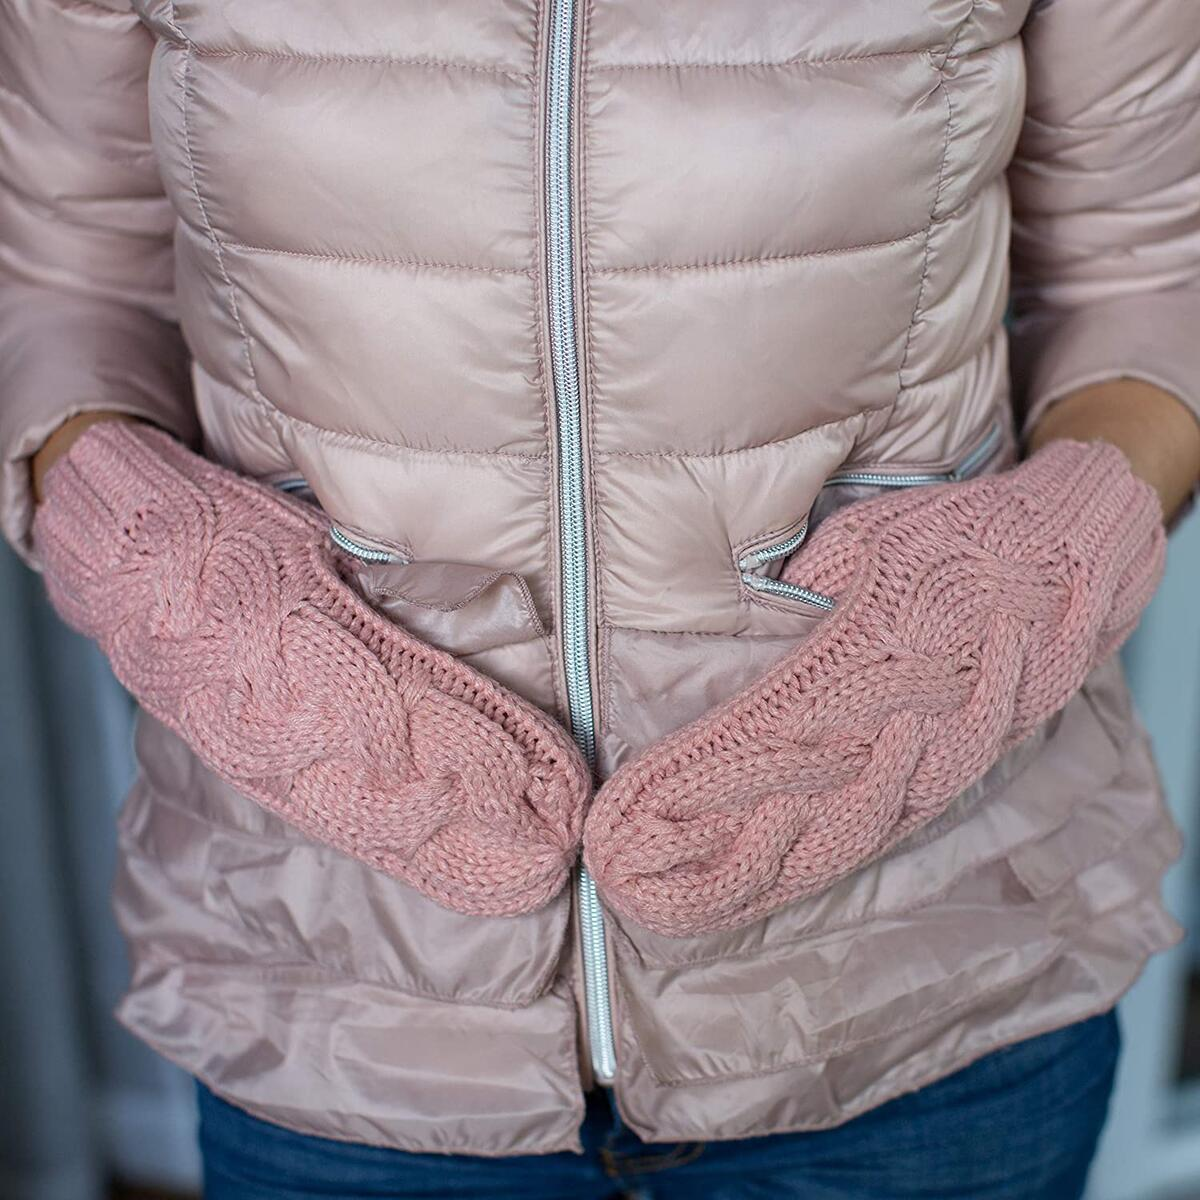 Mittens for Women Soft and Cozy for Cold Weather Wool Knit Womans Winter Mittens Warm Gloves (Pink)…